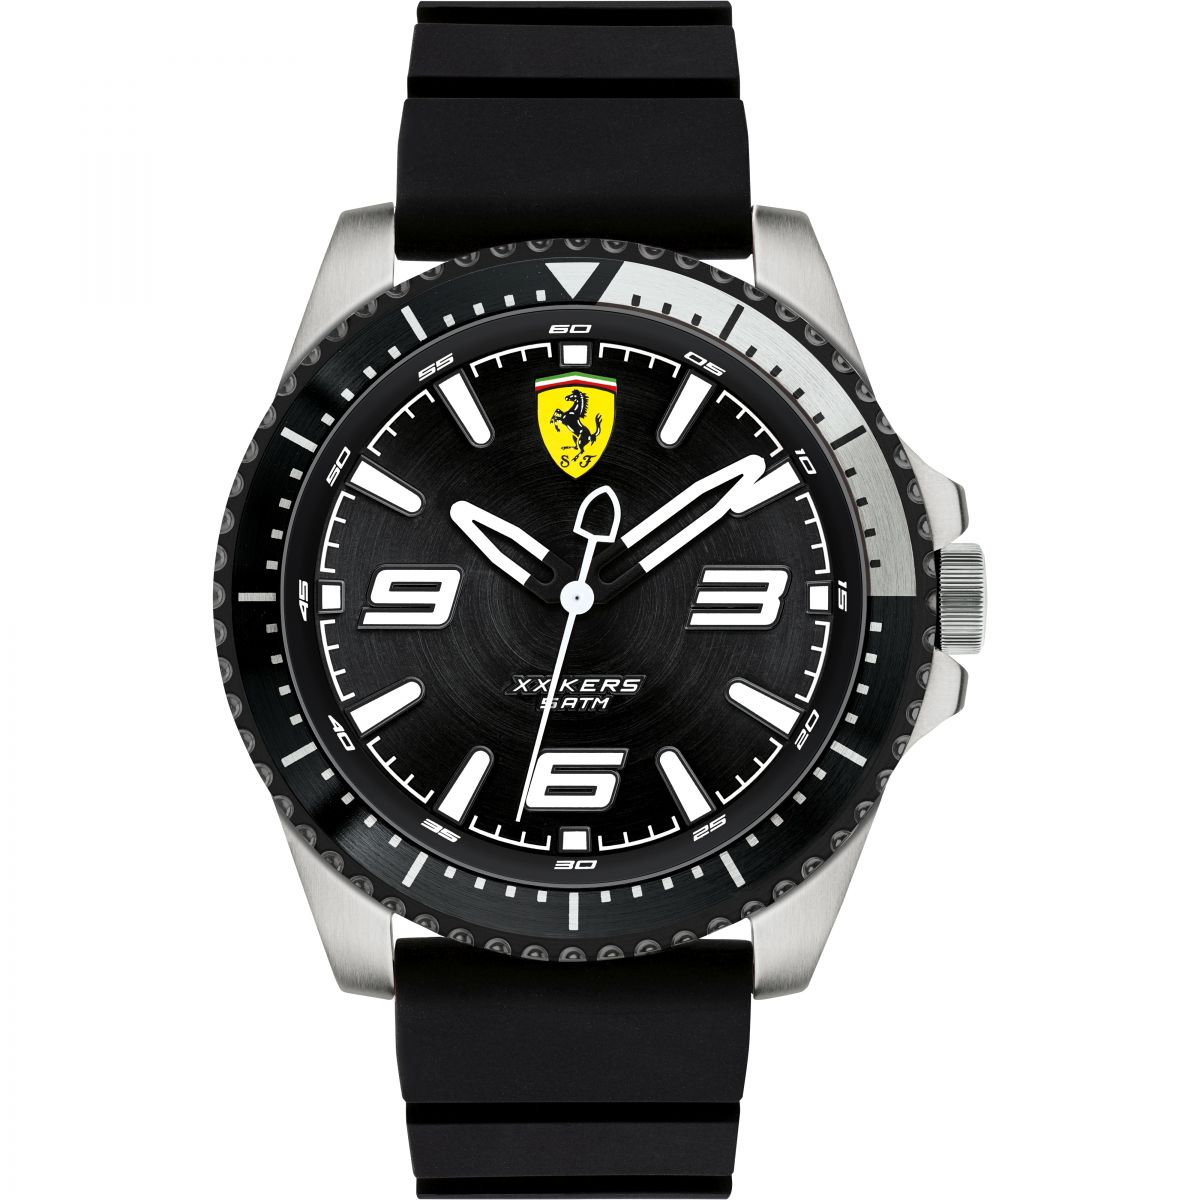 uhren maxresdefault watches youtube scuderia com russogioielli orologi watch ferrari by official